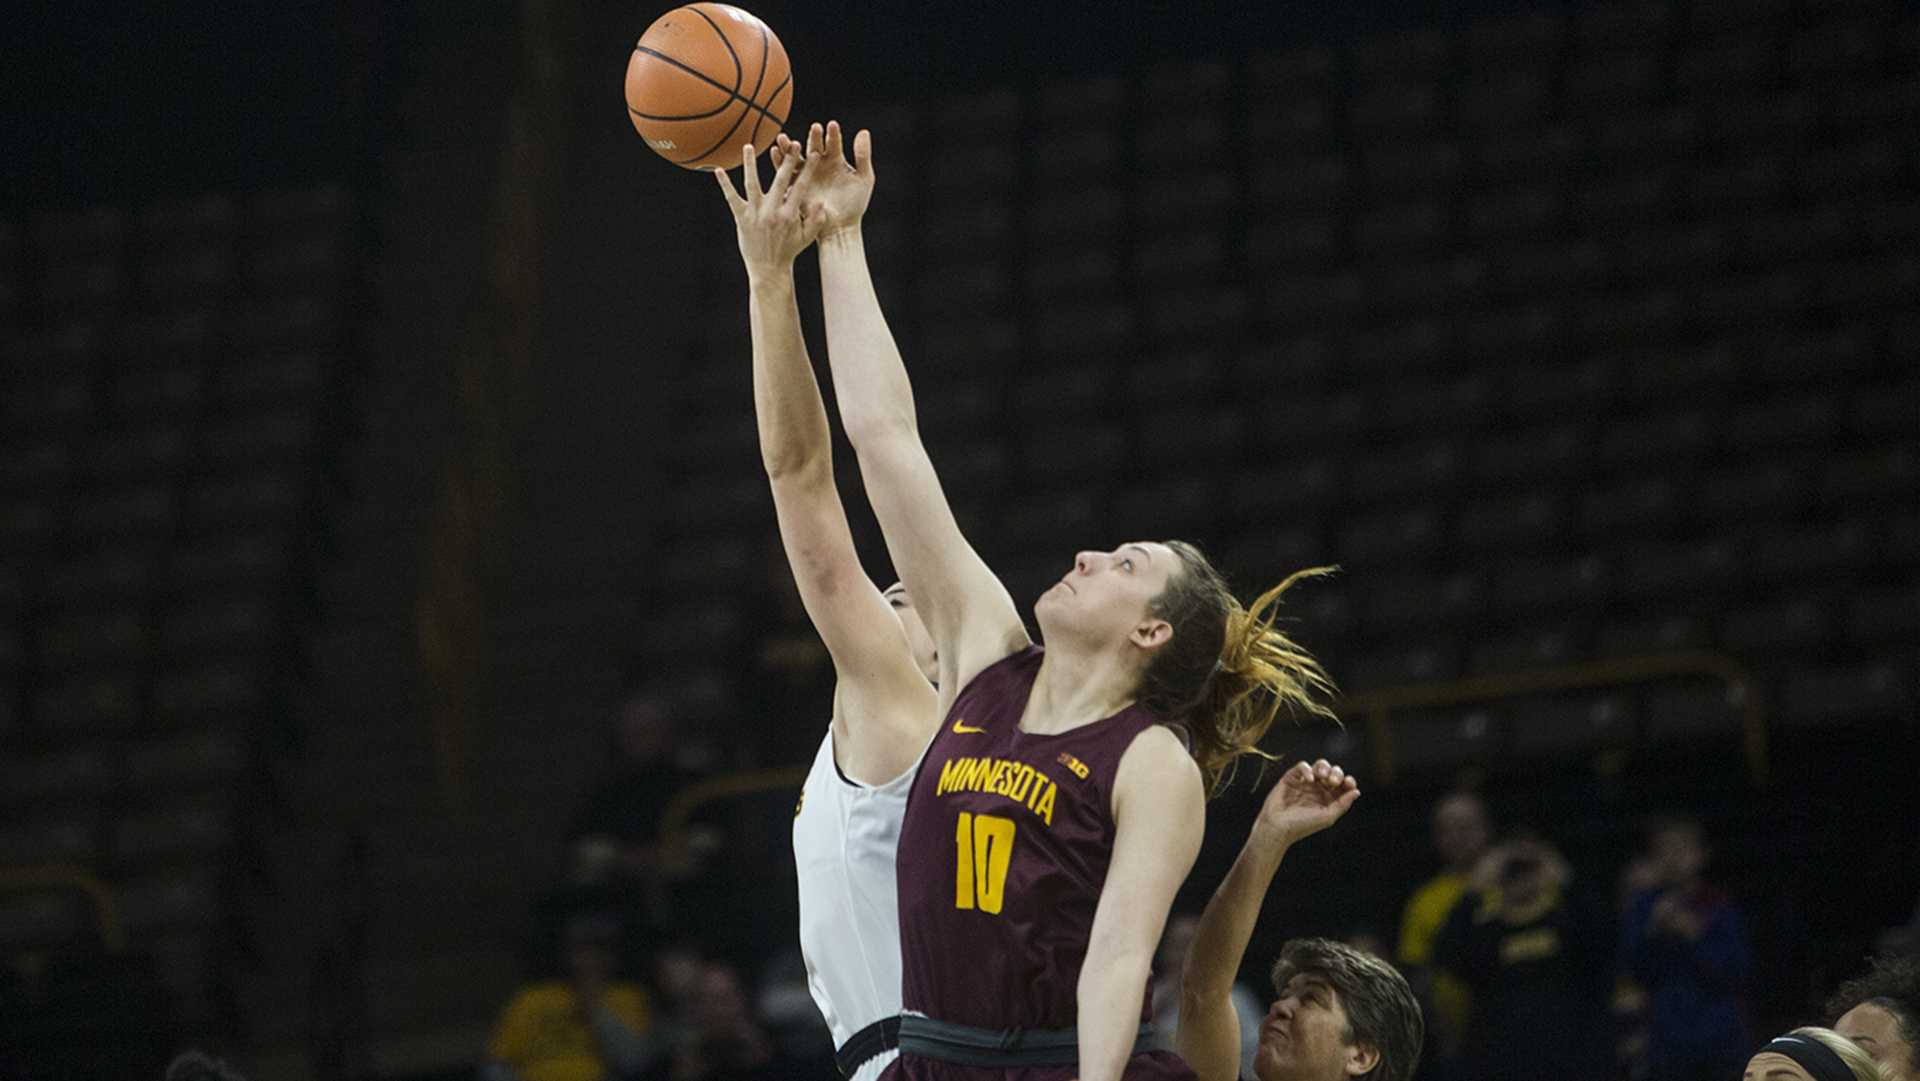 Iowa's Meghan Gustafson and Minnesota's Jessie Edwards tip-off during the Iowa vs. Minnesota basketball game at Carver-Hawkeye Arena on Sunday, Feb. 4, 2018. The Hawkeyes defeated the Golden Gophers 92-84.  (Chris Kalous/The Daily Iowan)